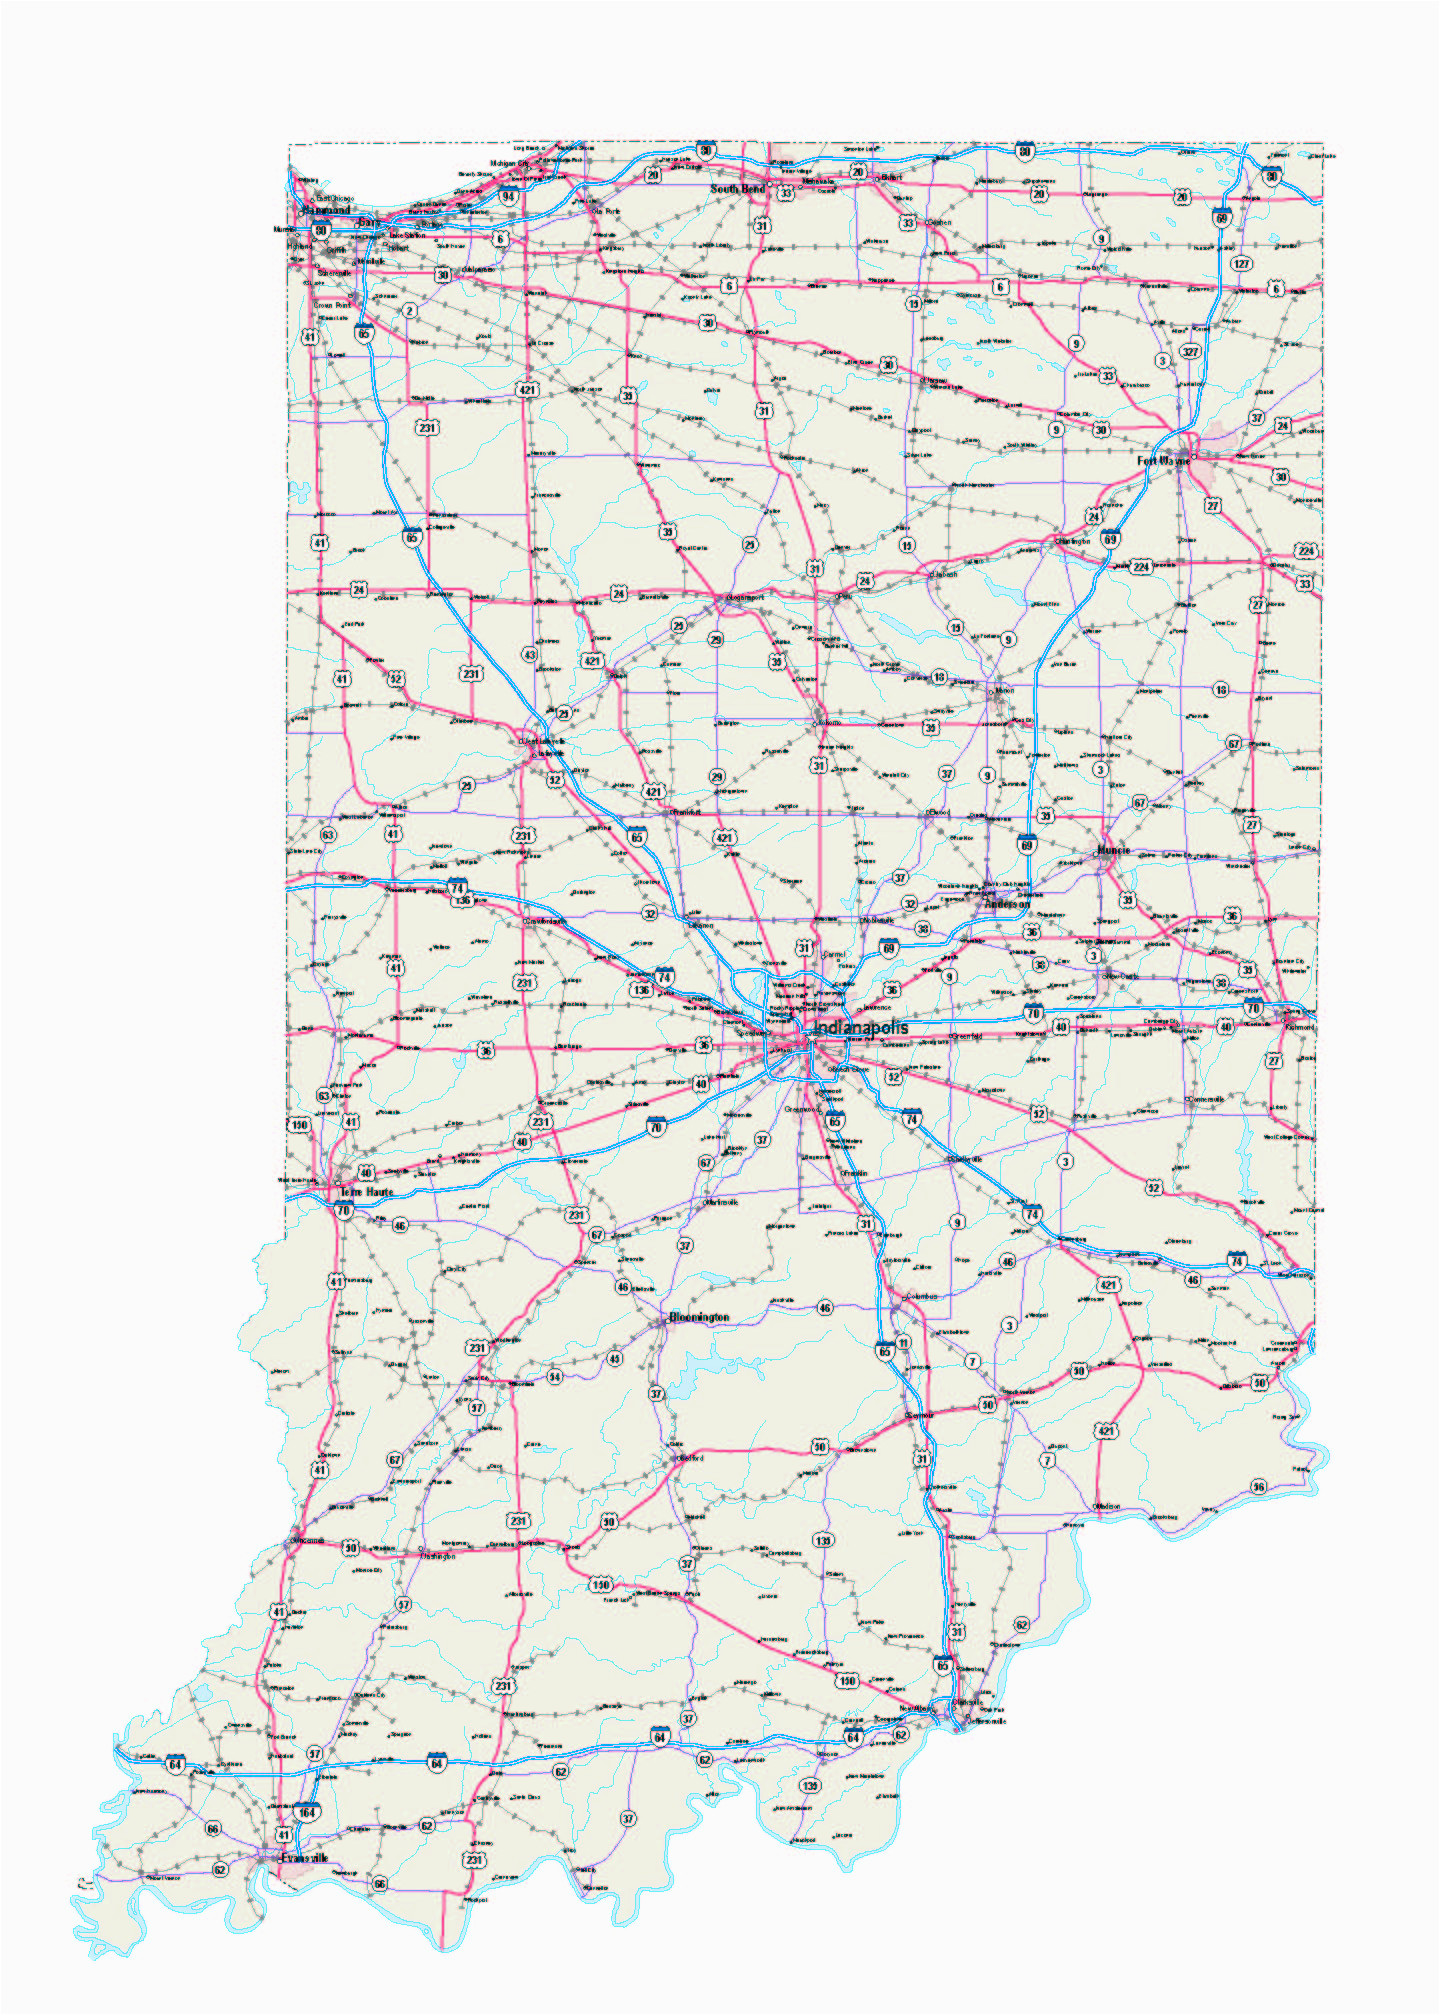 indiana maps indiana map indiana road map indiana state map